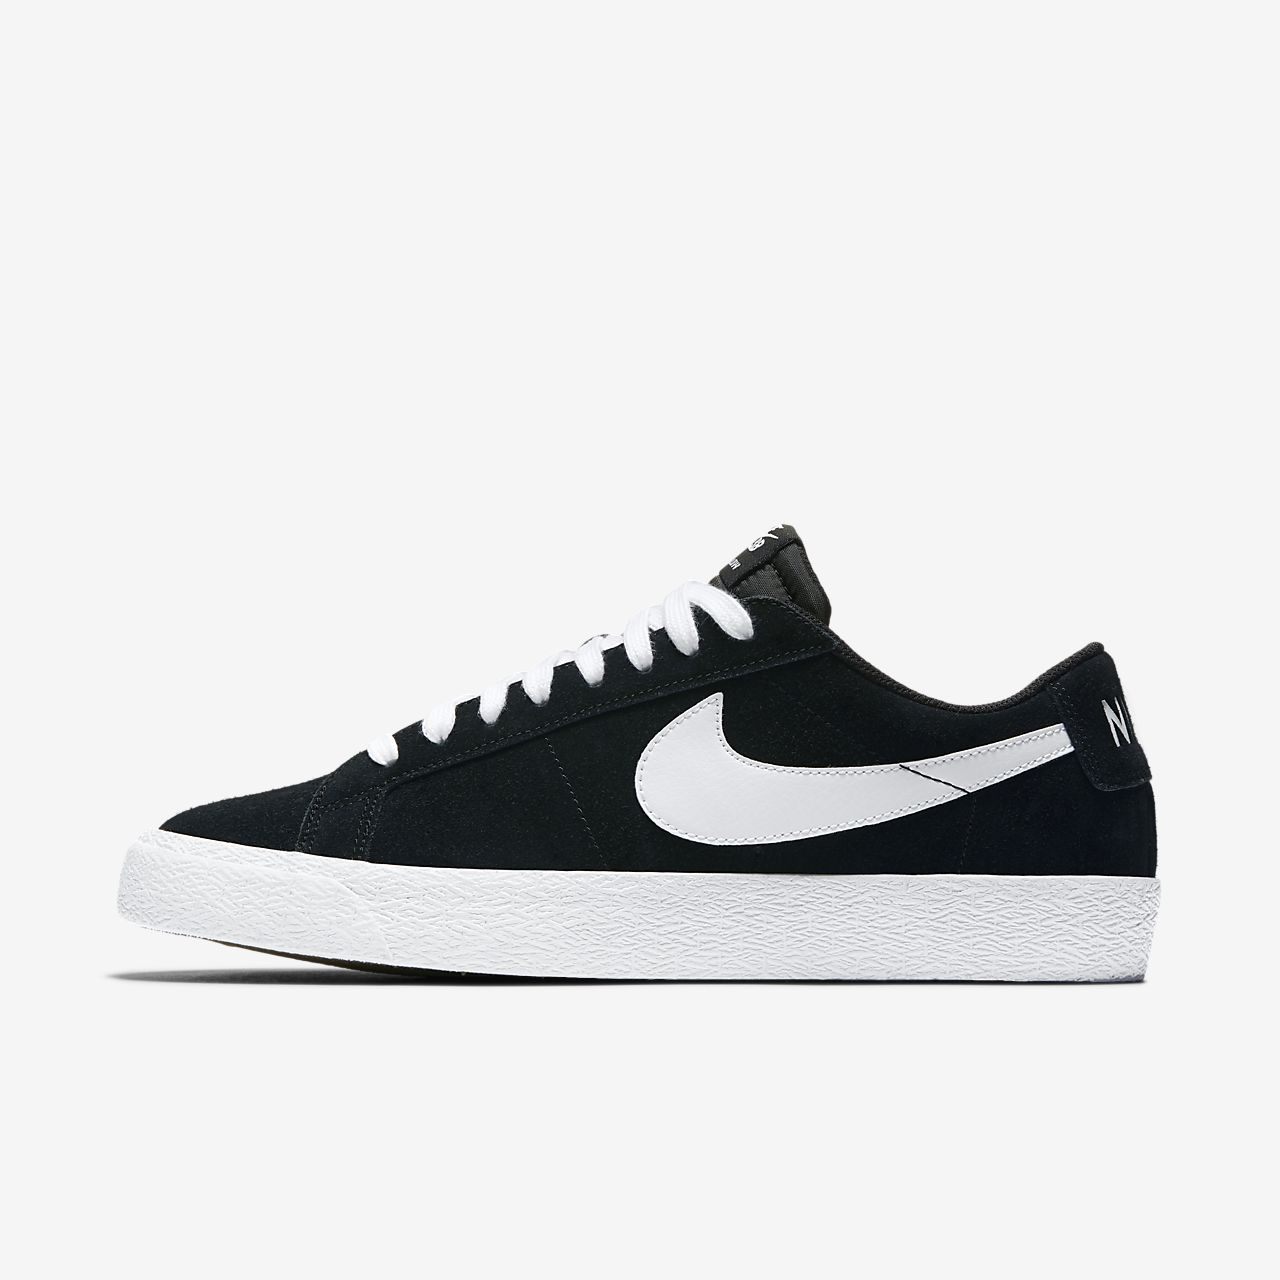 70545bf6996 Nike SB Blazer Zoom Low Men s Skateboarding Shoe. Nike.com